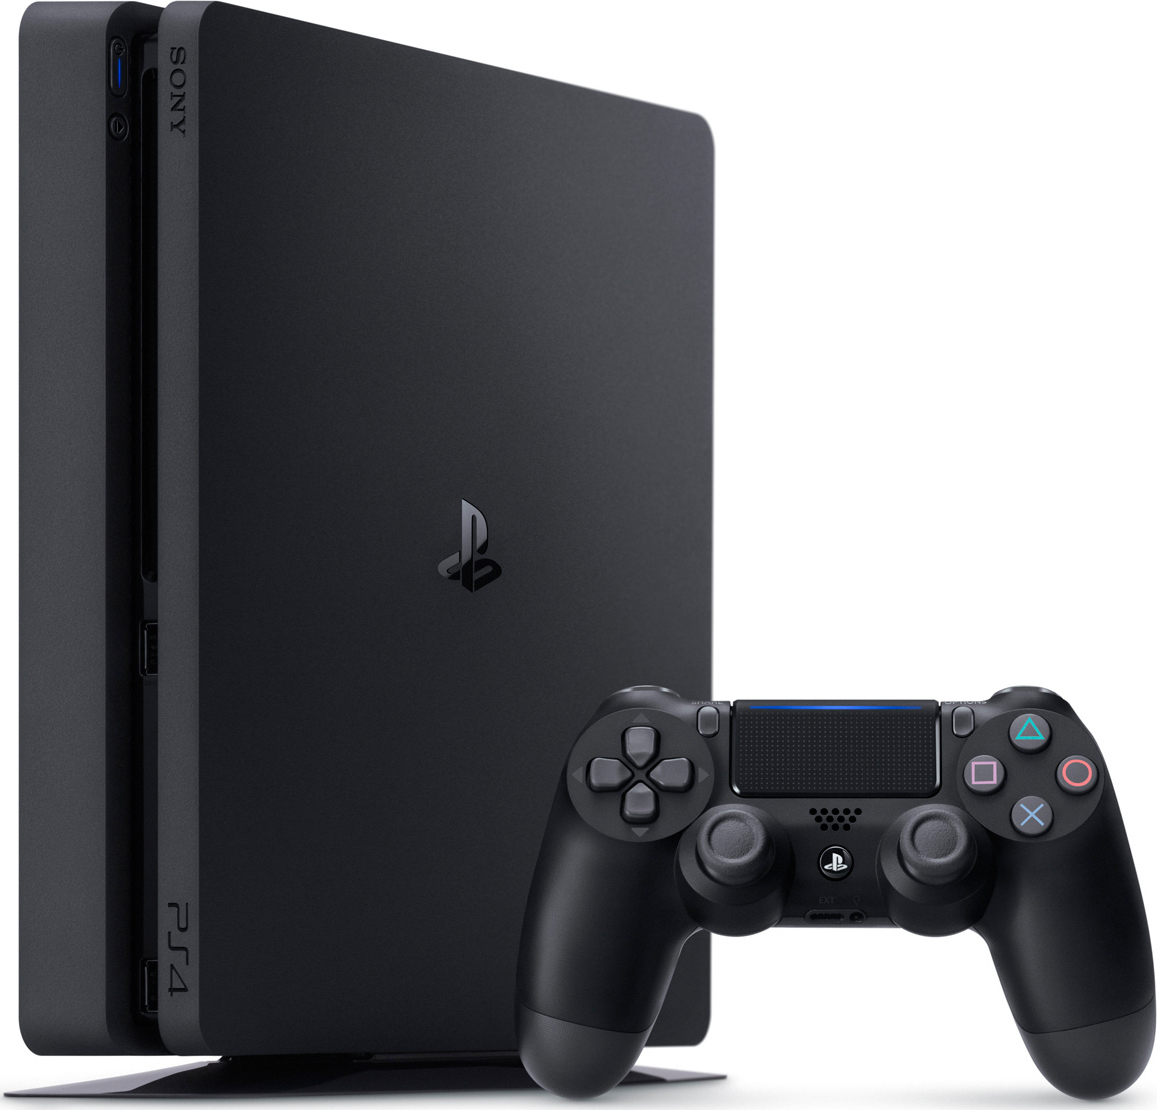 Sony Playstation 4 PS4 Slim D Chassis 1TB Black EU